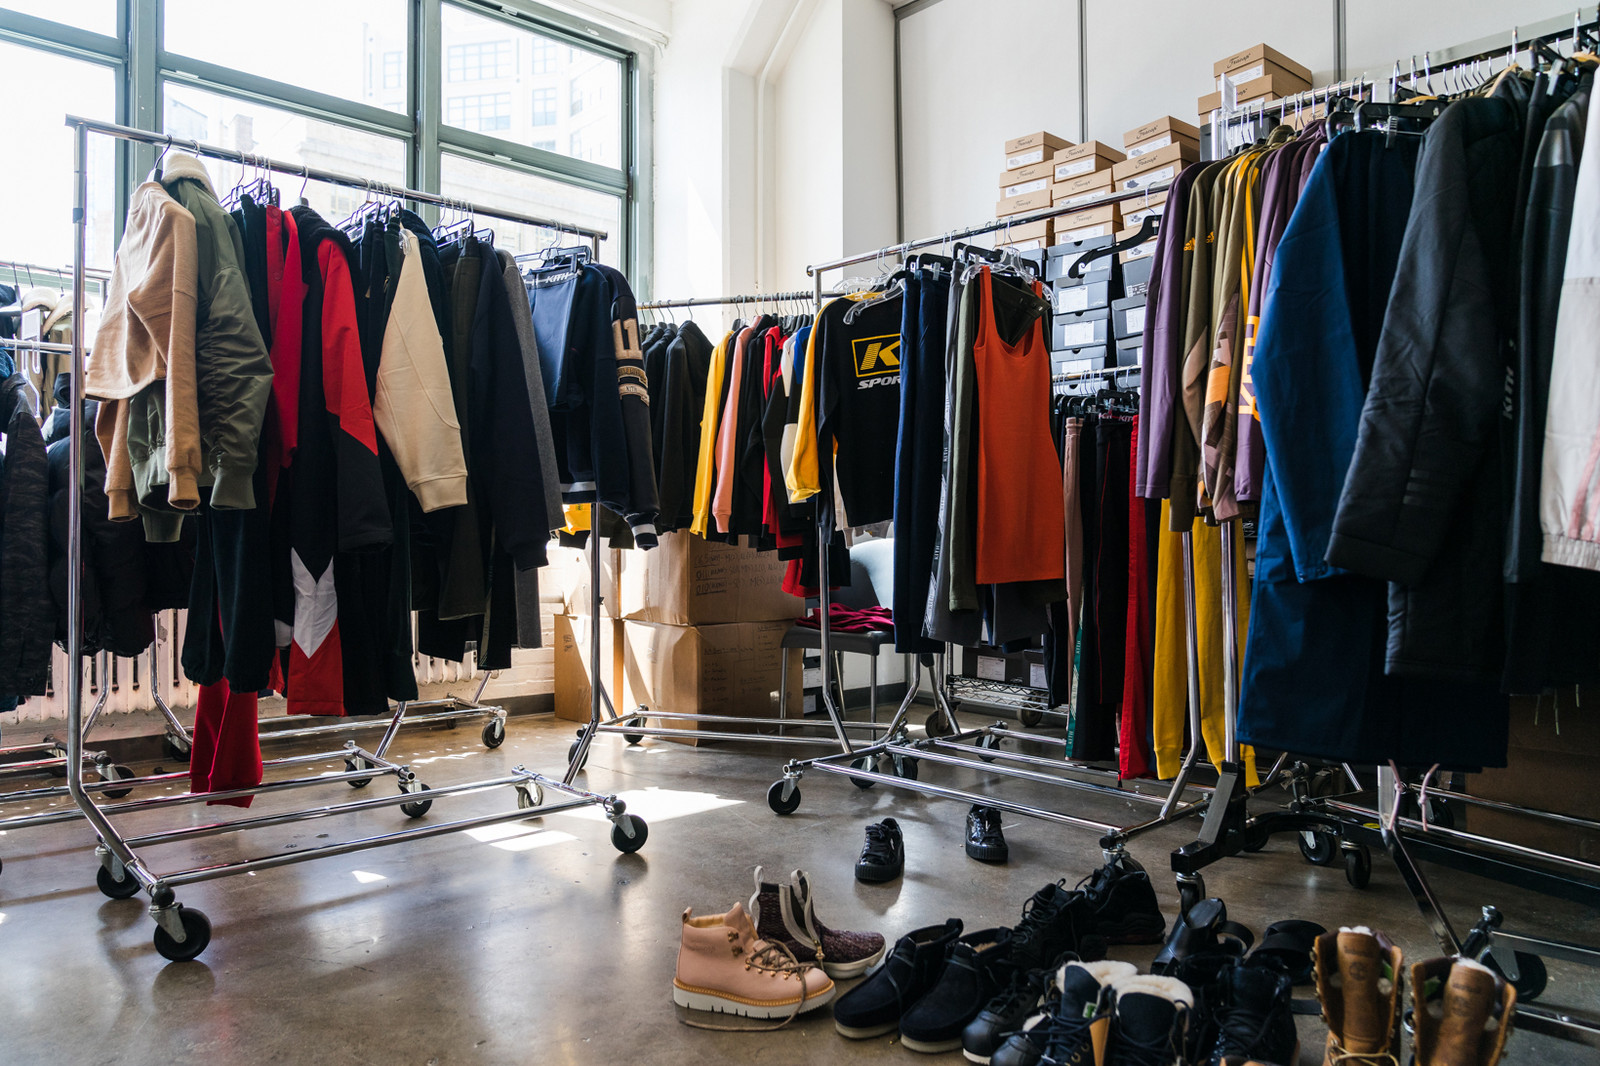 Emily Oberg KITH SPORT 2018 Spring Summer Show Behind the Scenes Casting Styling